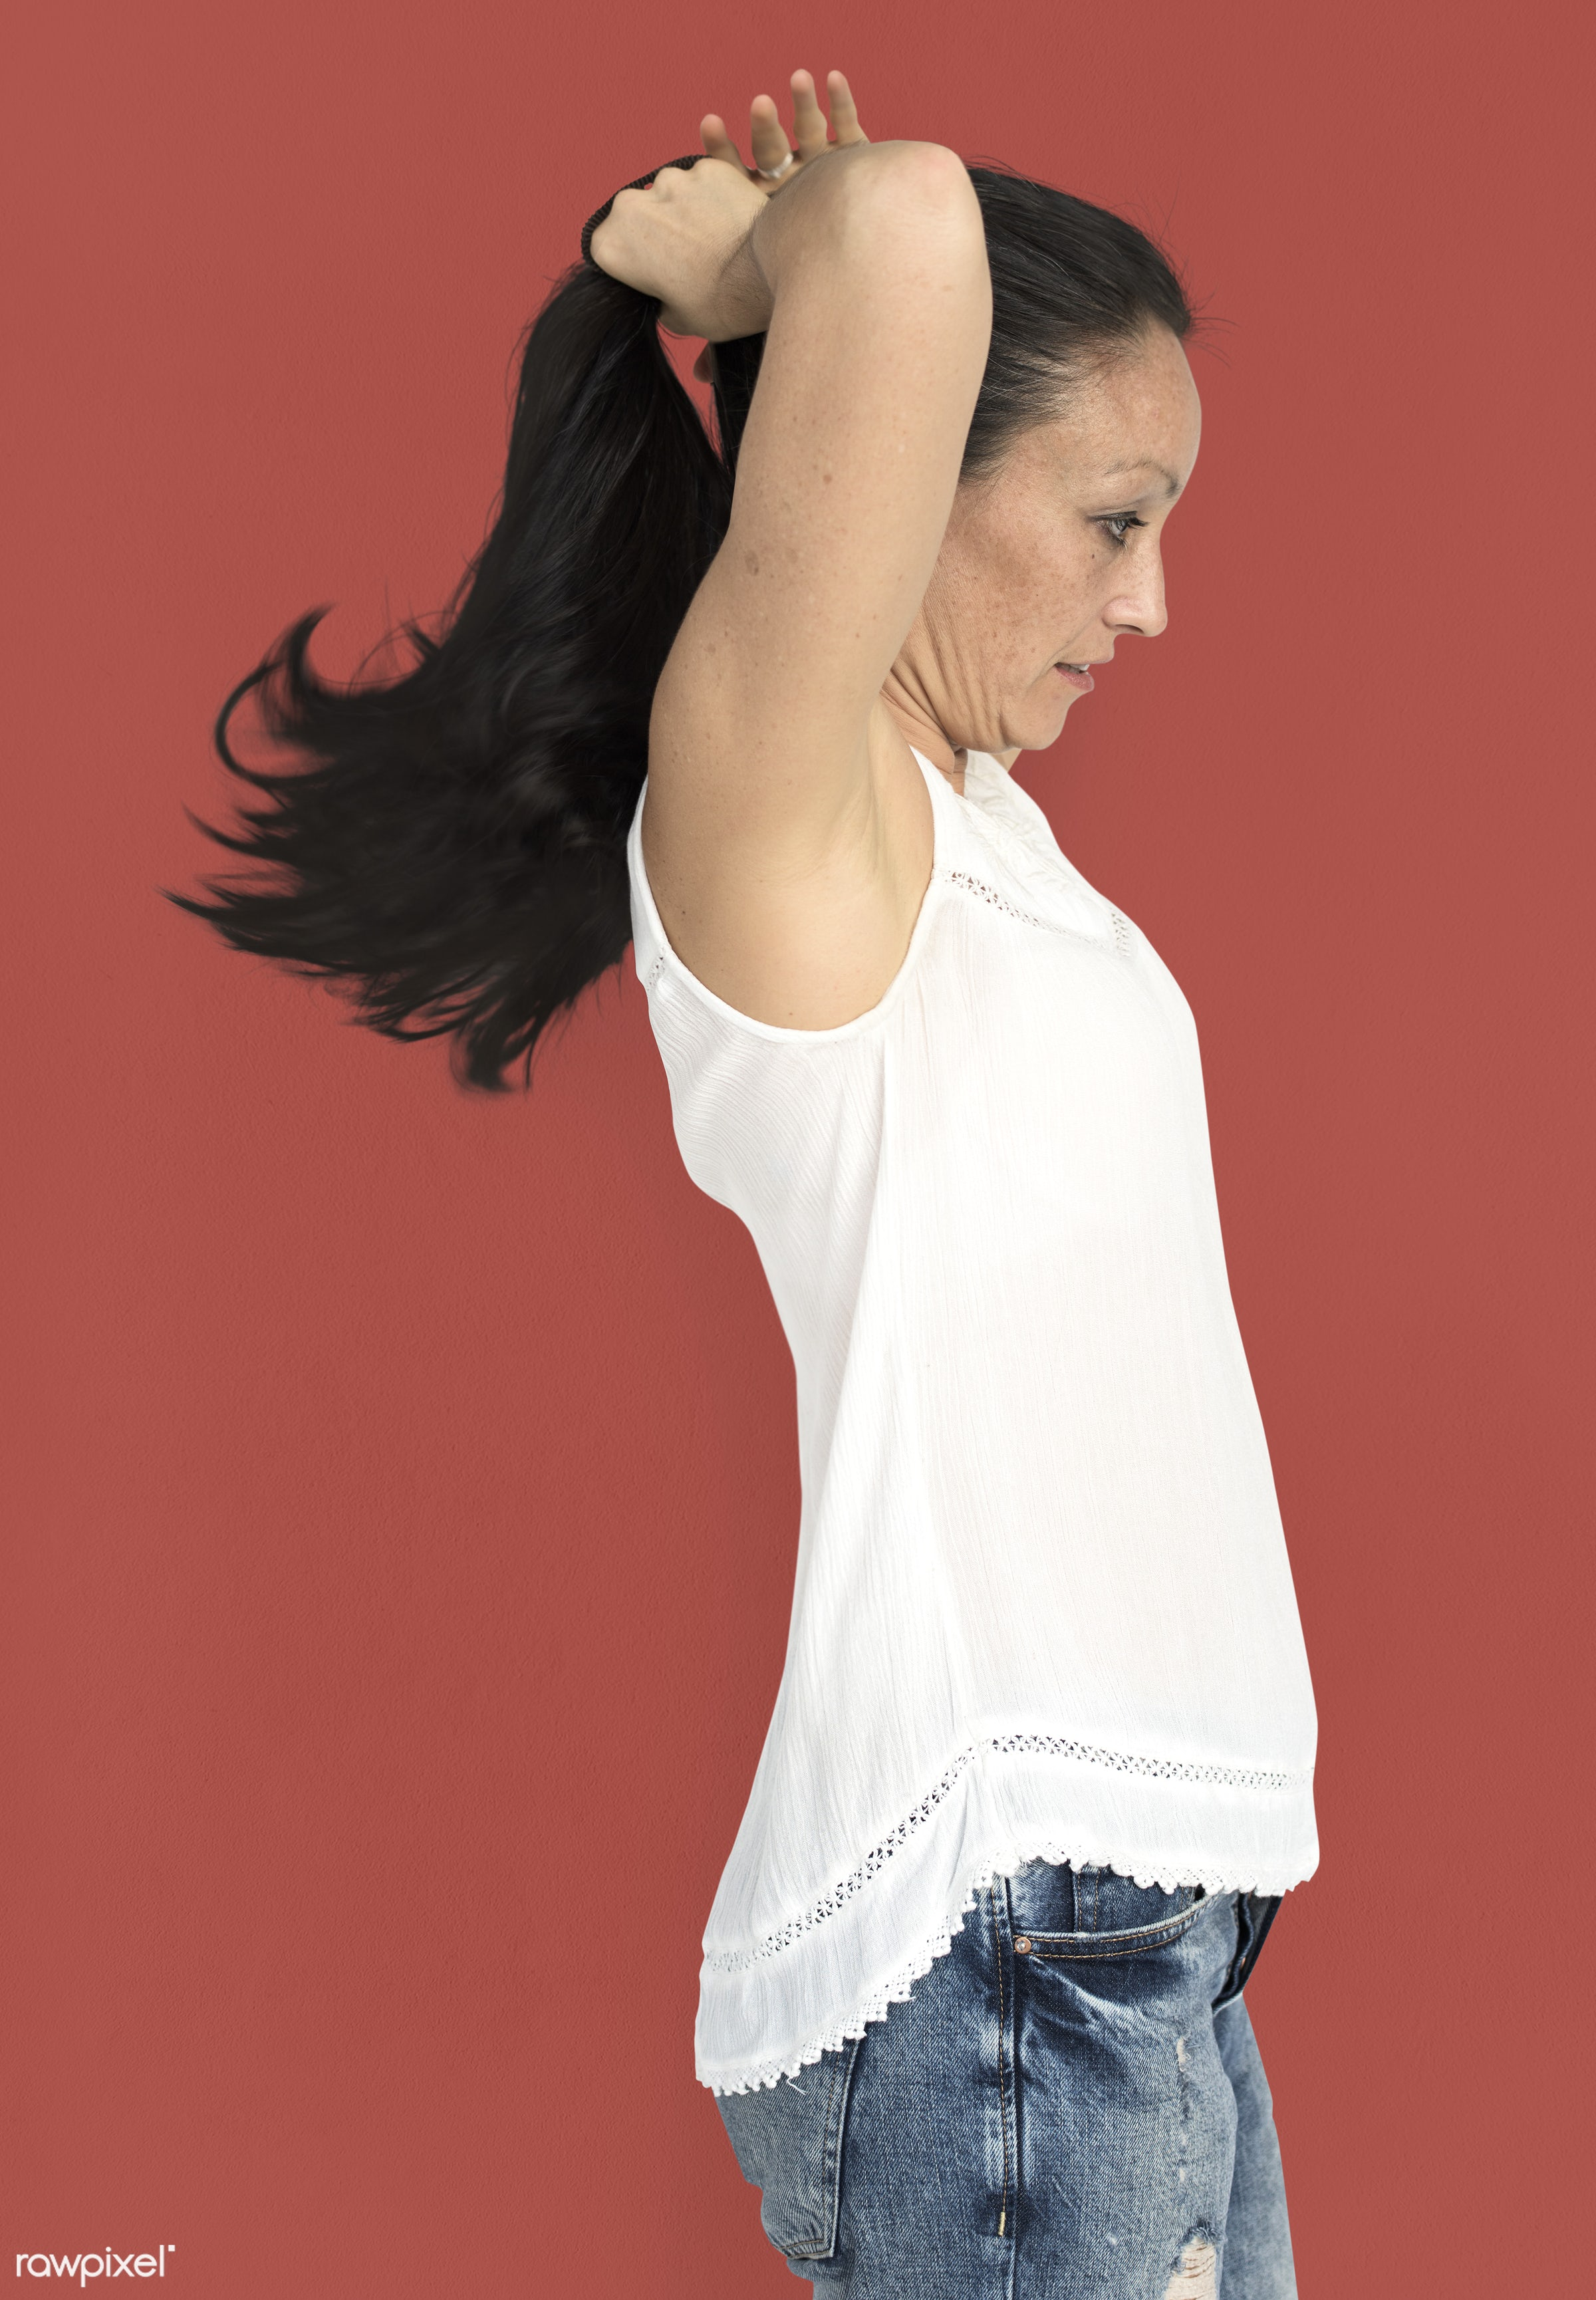 studio, model, person, people, race, style, solo, woman, lifestyle, casual, feminism, hair, isolated, gesture, posing,...